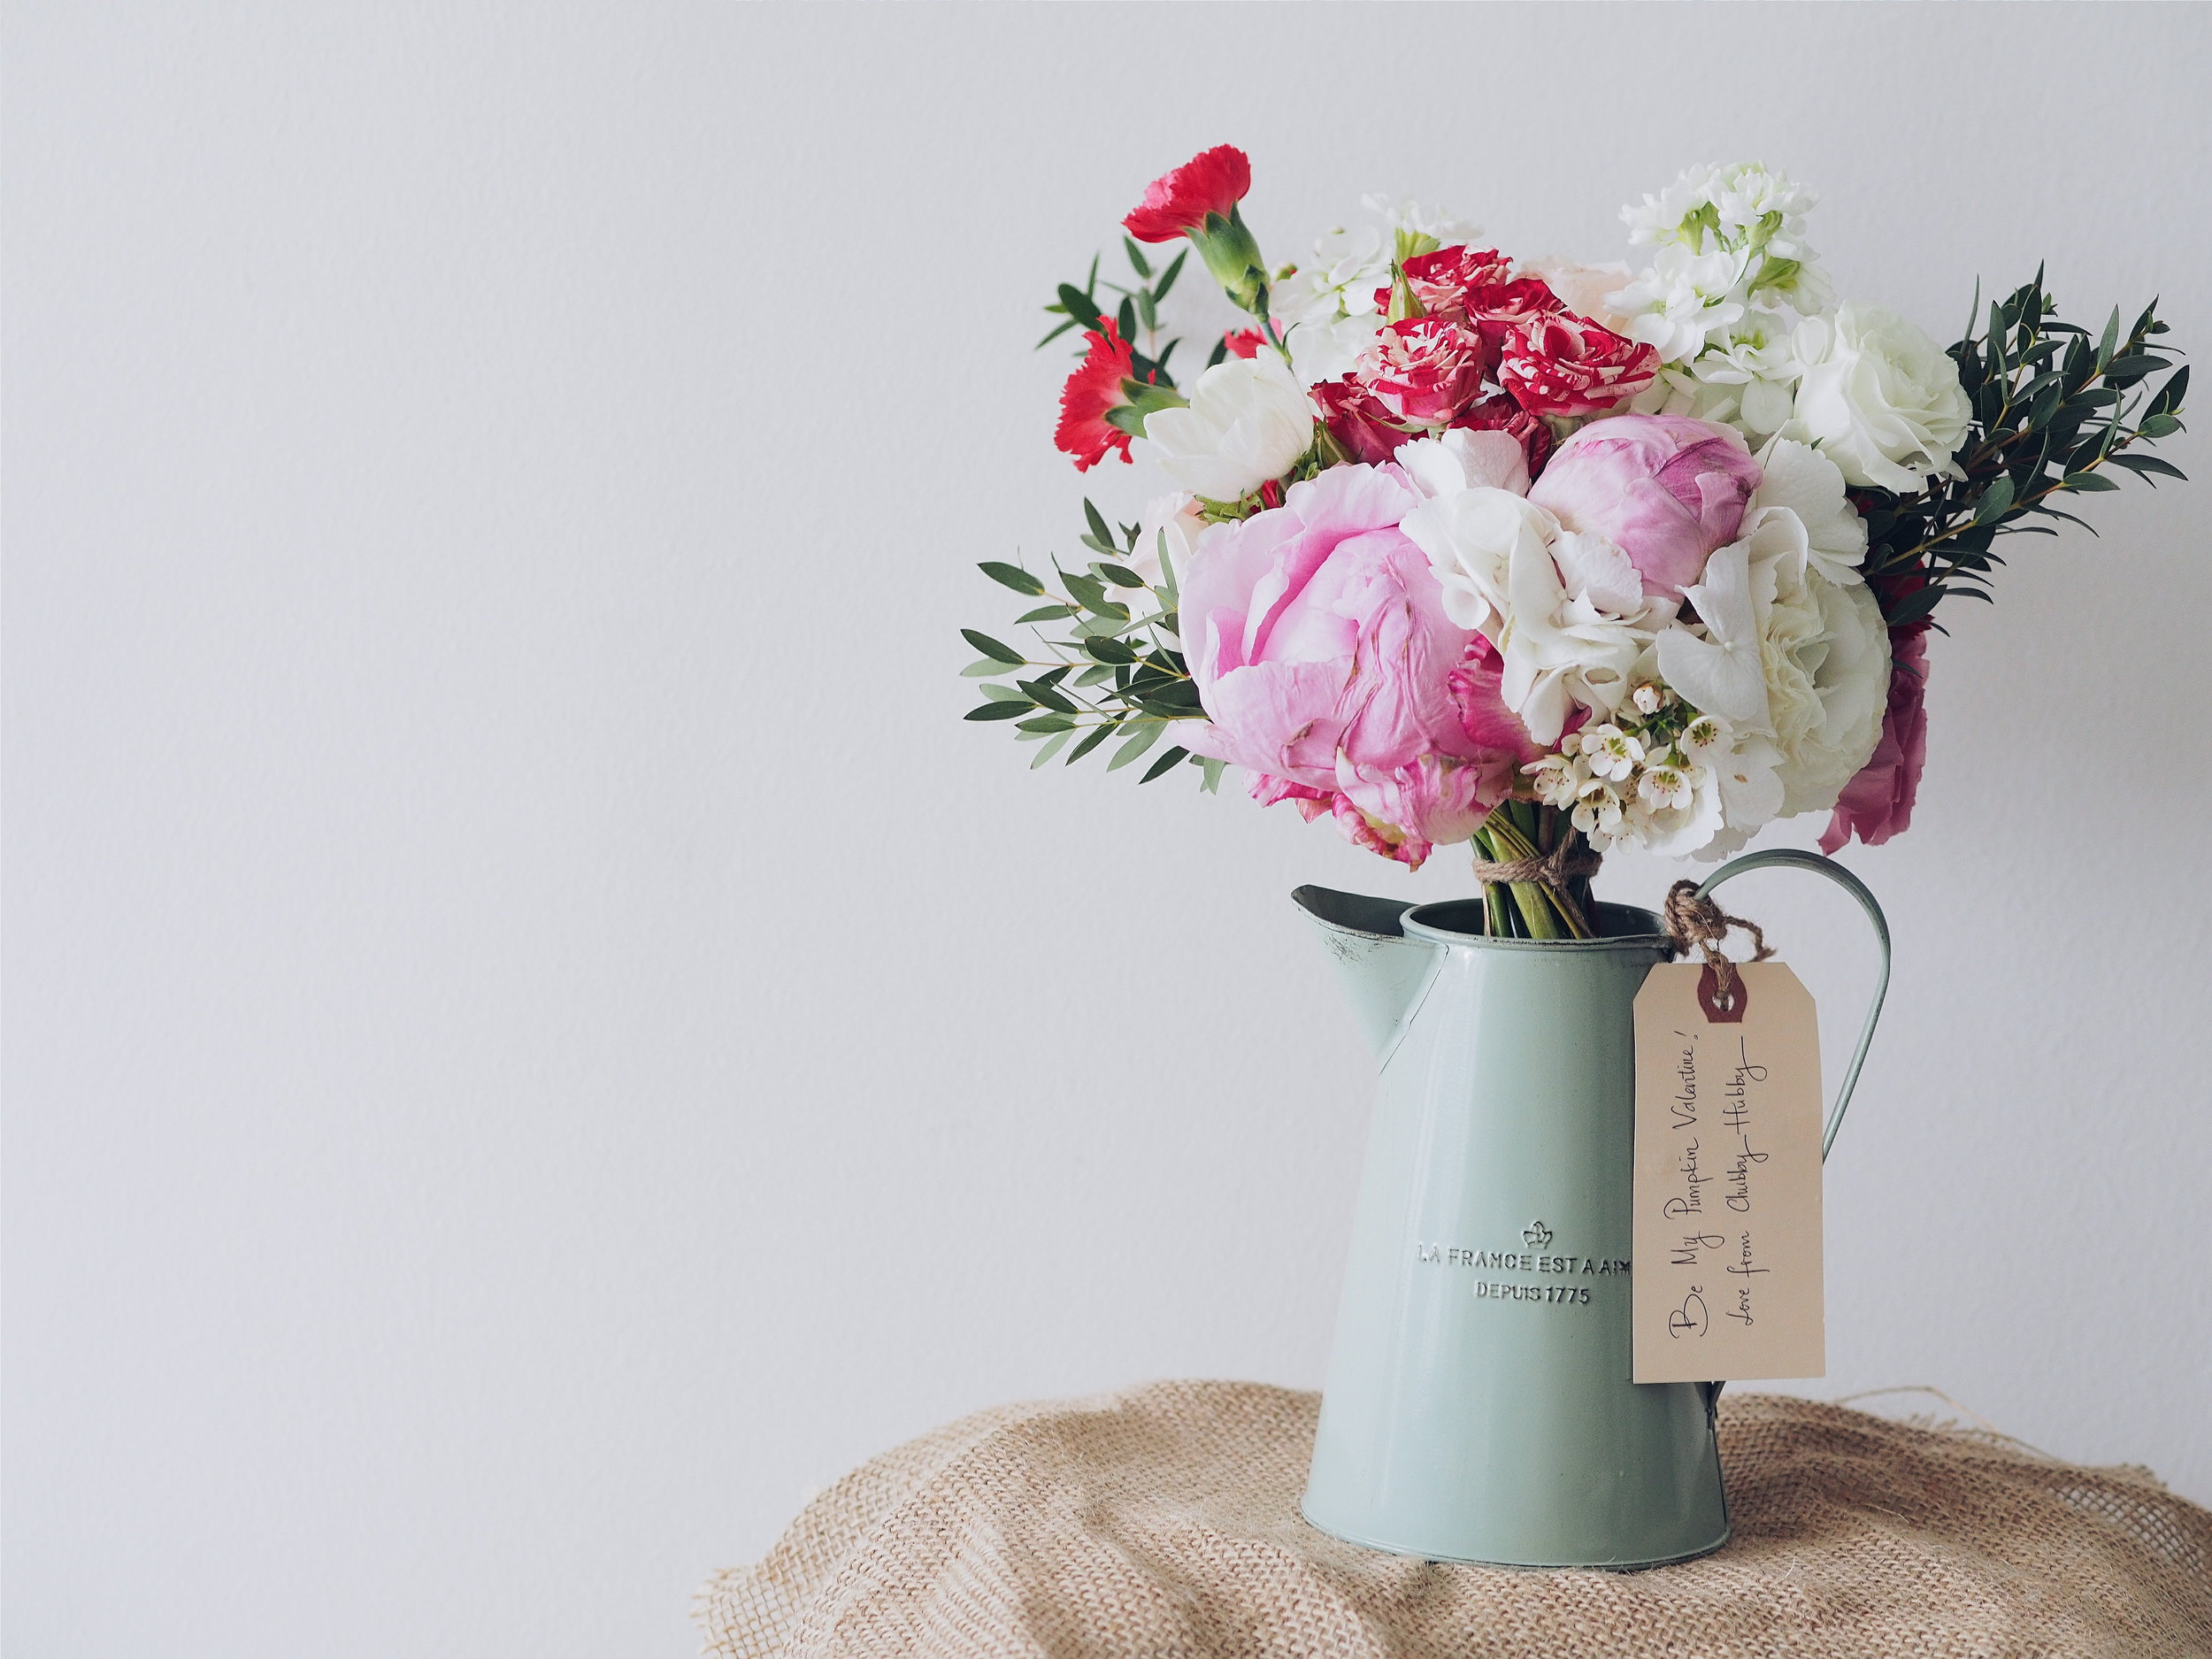 """Think outside the vase"" and get out of the typical shopping scene.  Experience something different like Naples' only DYI Flower Studio, Steven Bowles Creative."